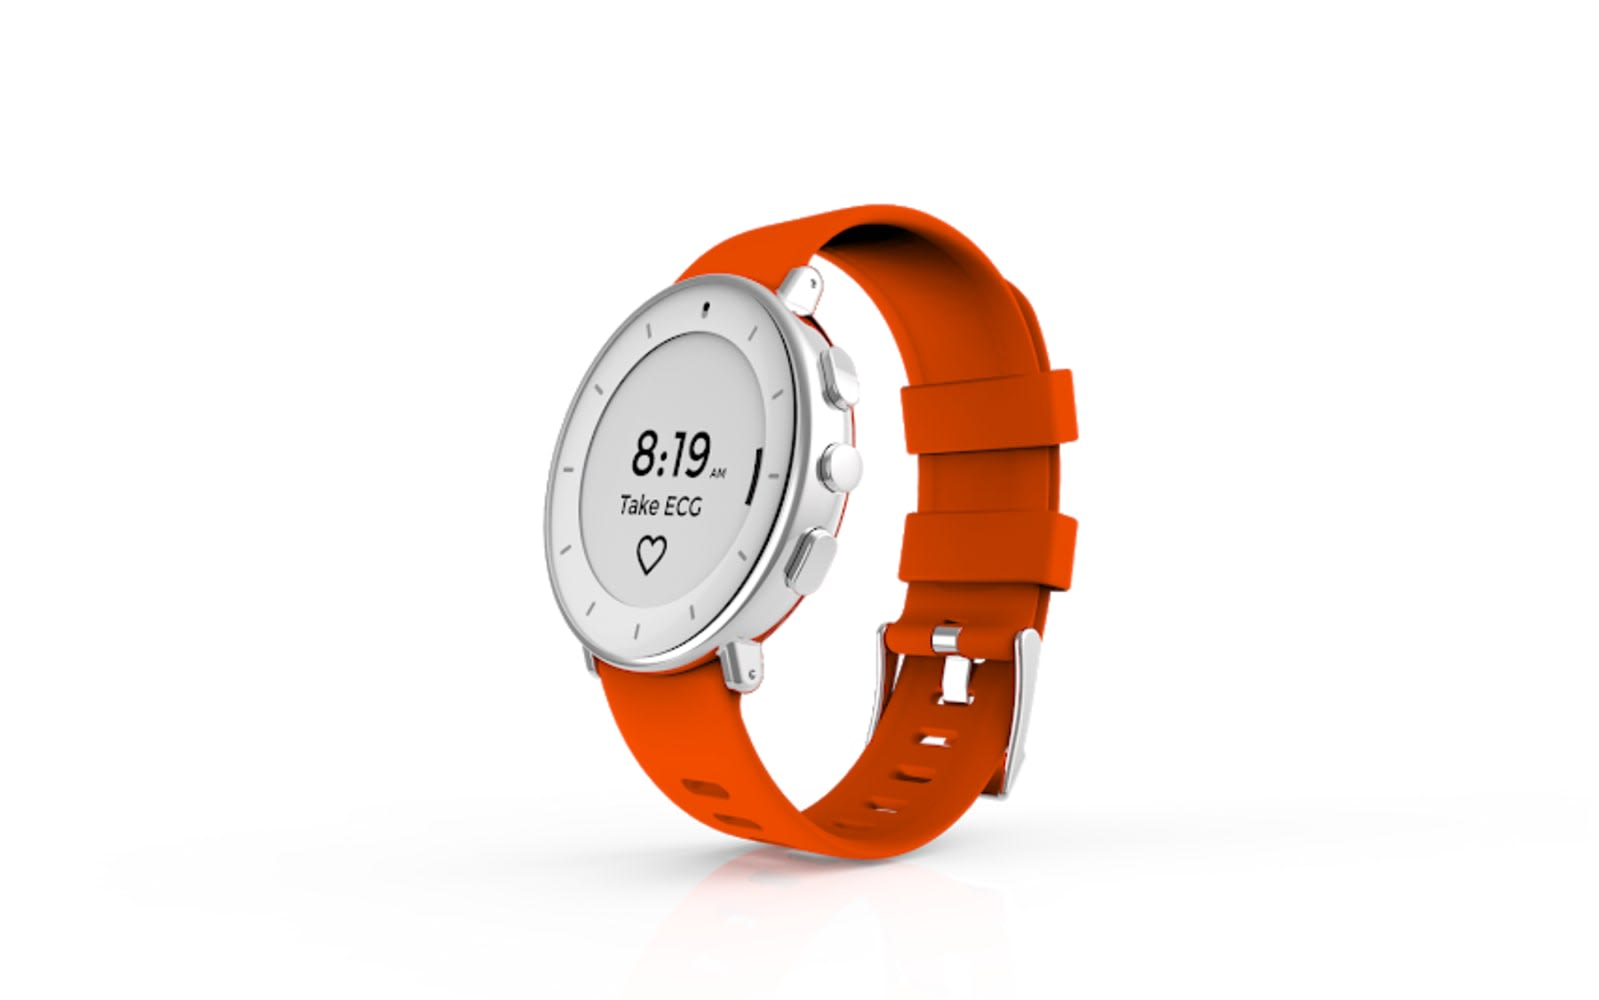 Alphabet's Verily health watch gets FDA approval for ECG feature